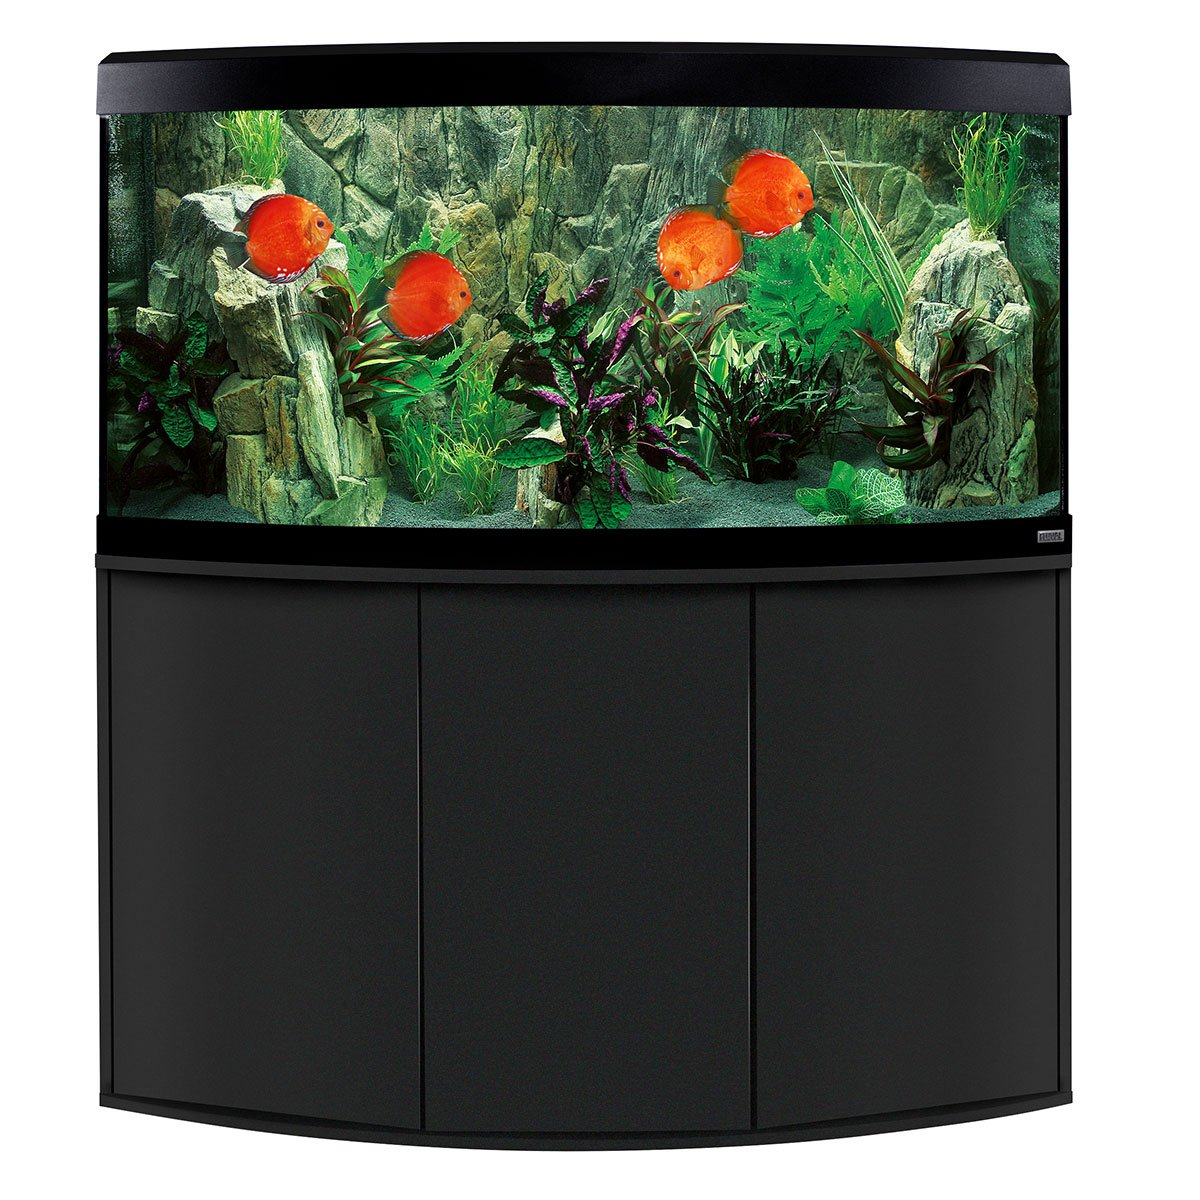 fluval panoramaaquarium mit led beleuchtung vicenza 260. Black Bedroom Furniture Sets. Home Design Ideas